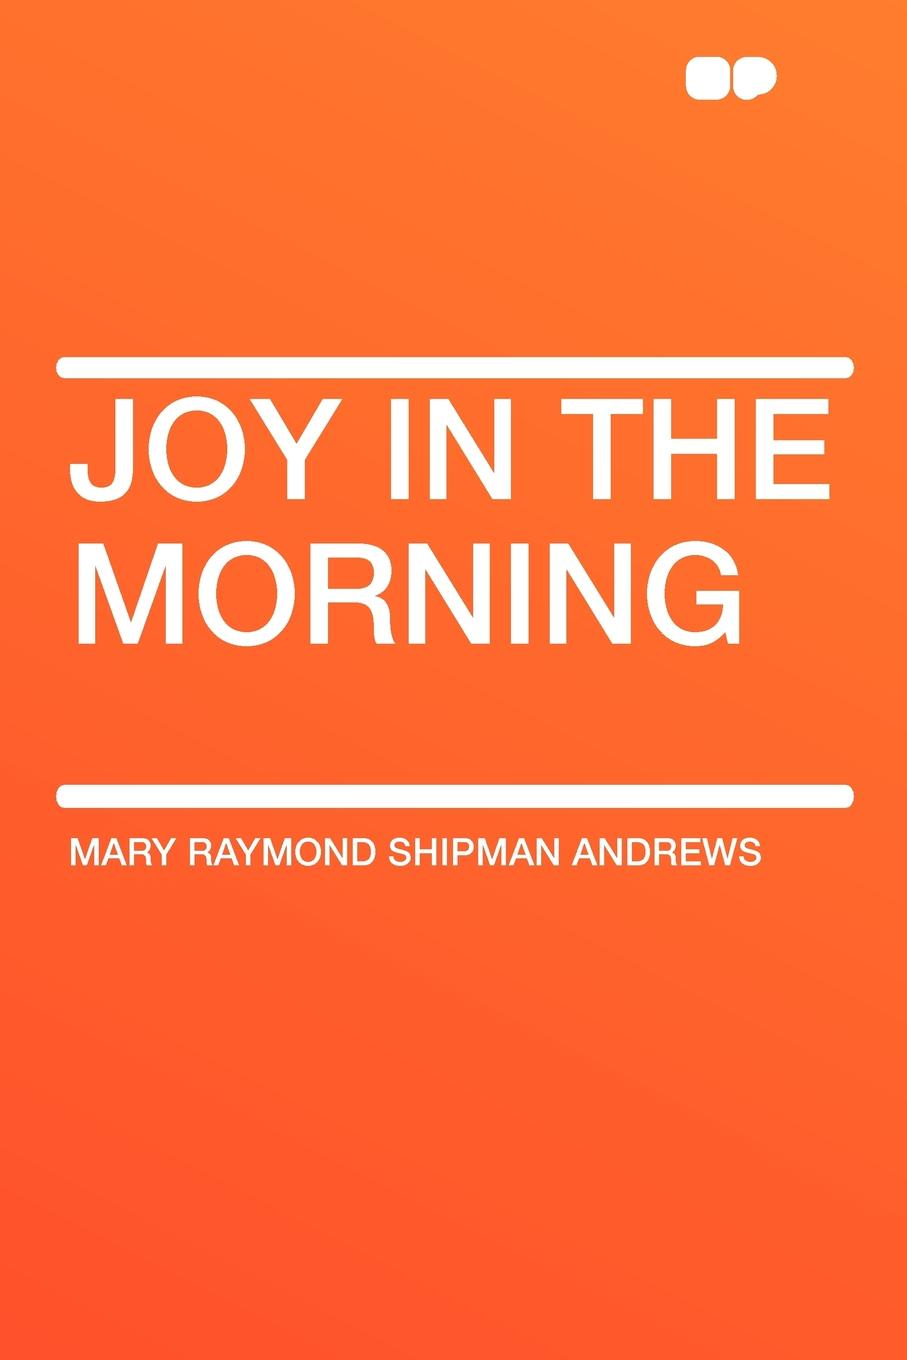 Mary Raymond Shipman Andrews Joy in the Morning jorge cruise 8 minutes in the morning r